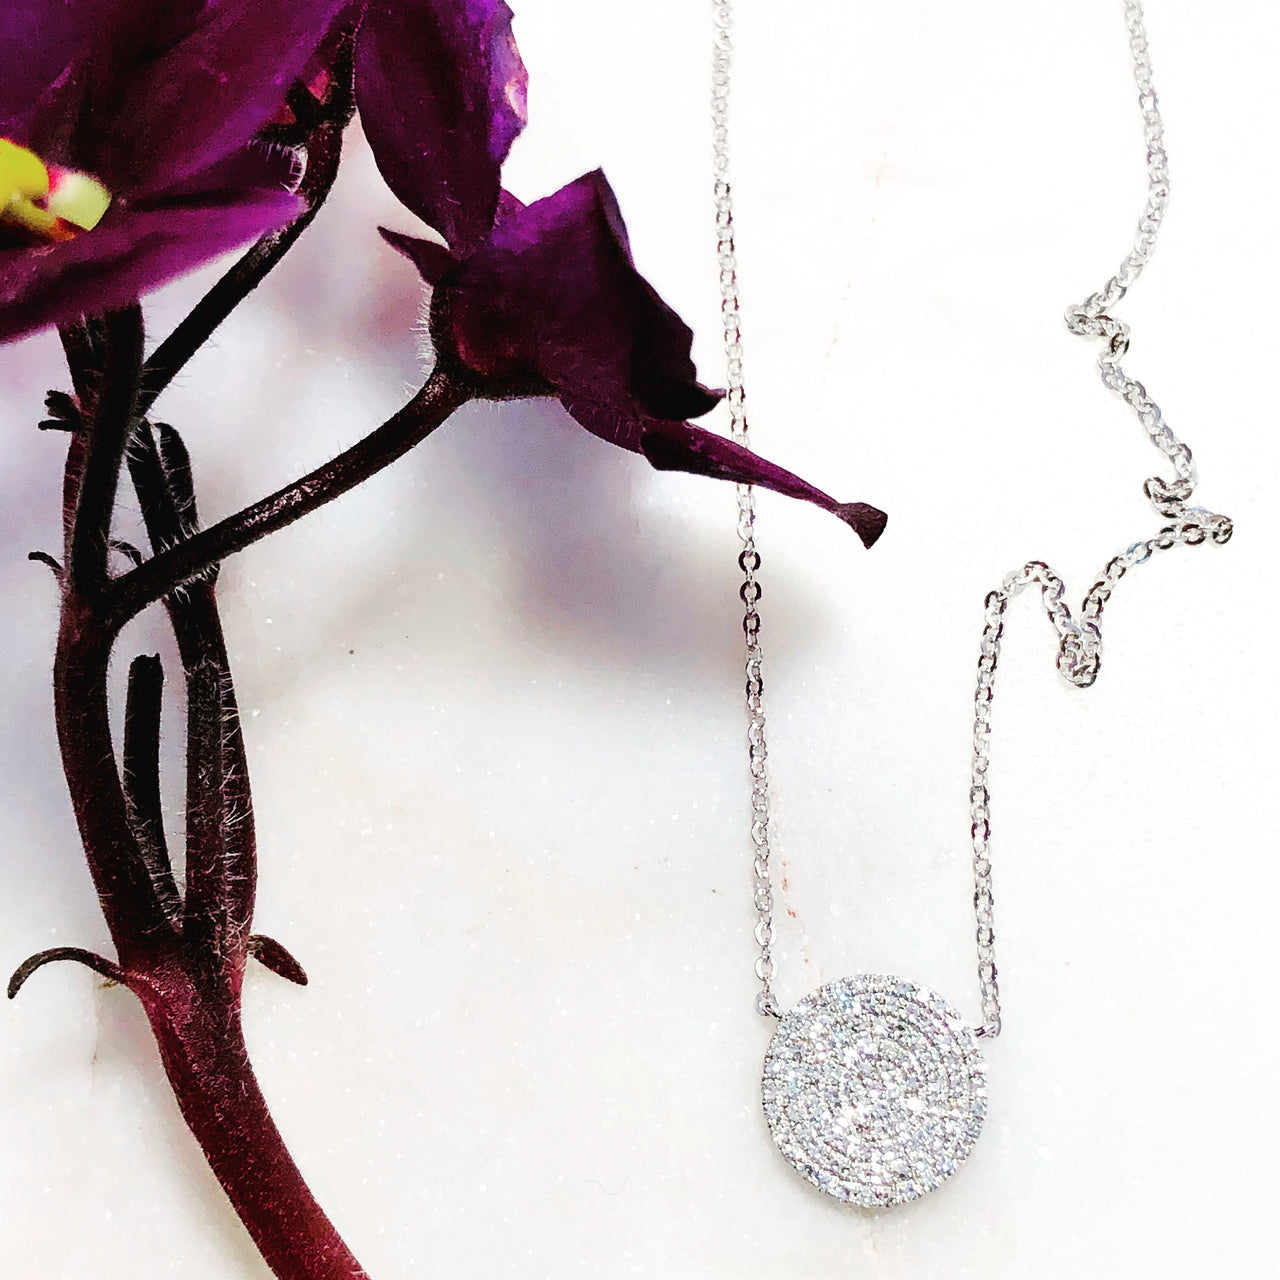 14K White Gold Diamond Necklace.